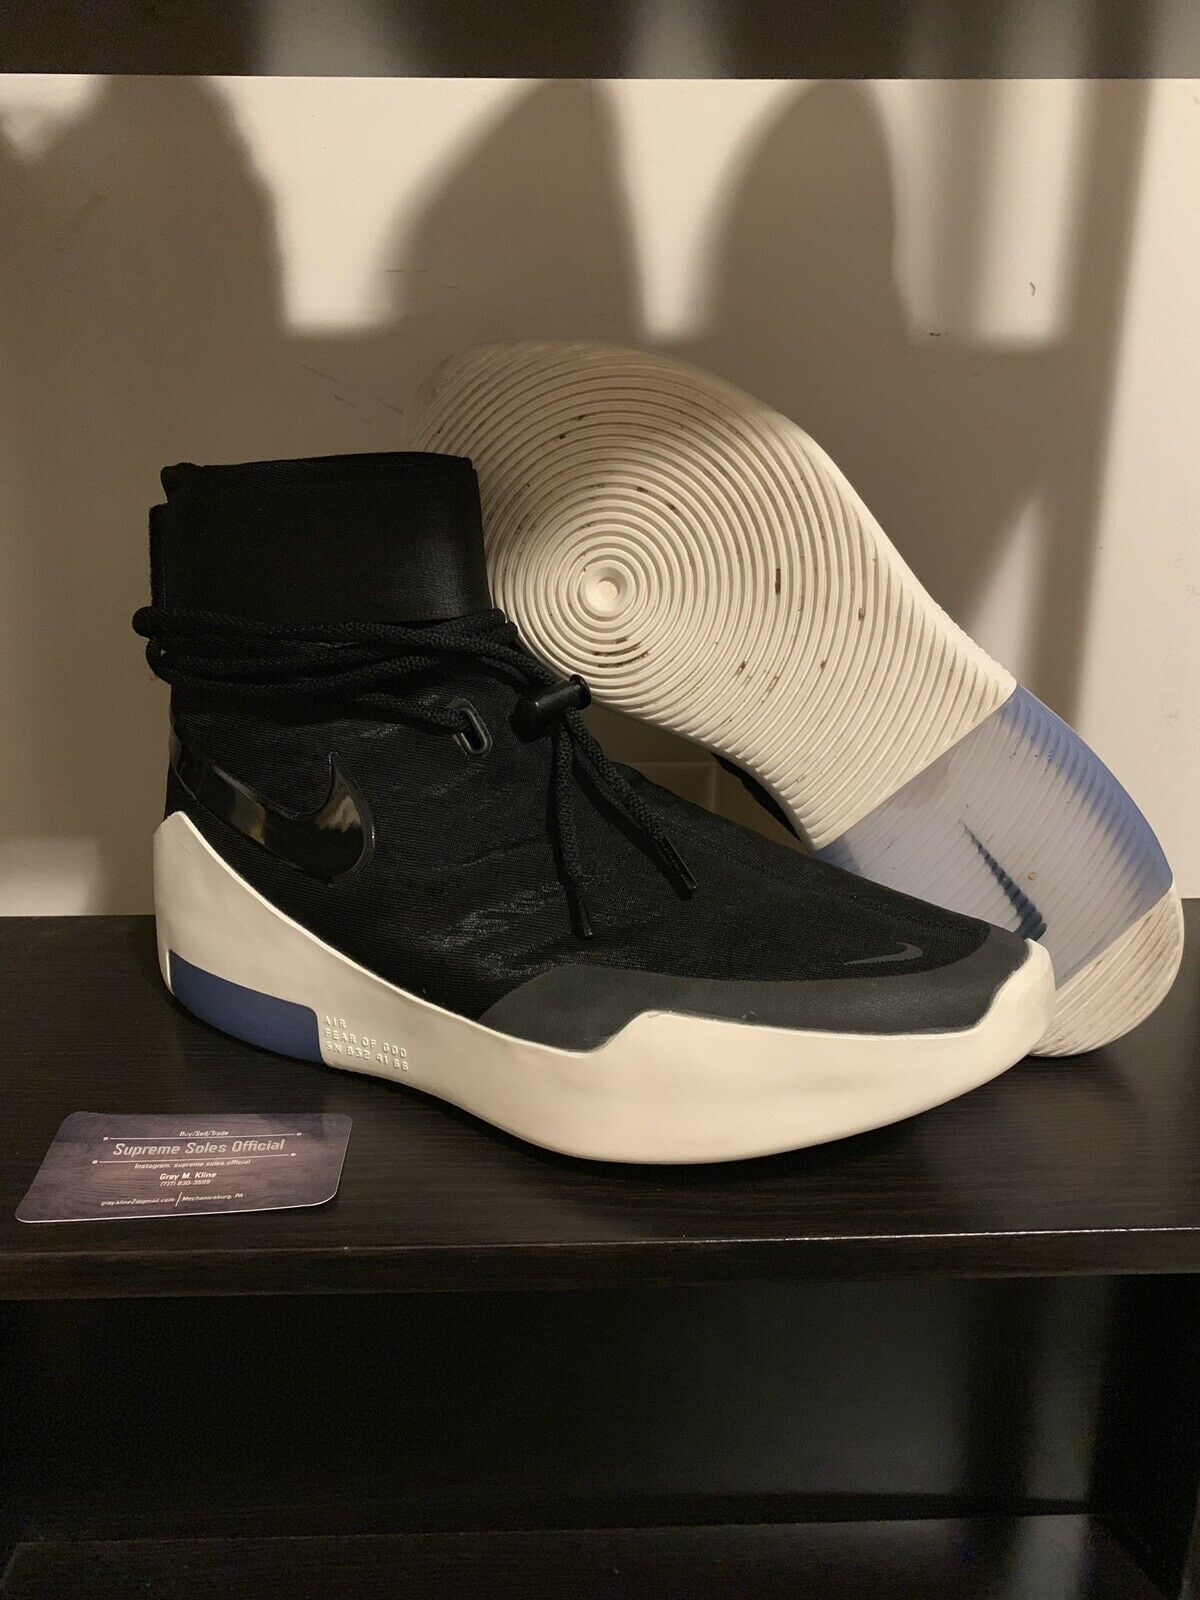 Nike Air Fear Of God 1 Black Light Bone FOG Shoot Around Jerry Lorenzo (SIZE 13)